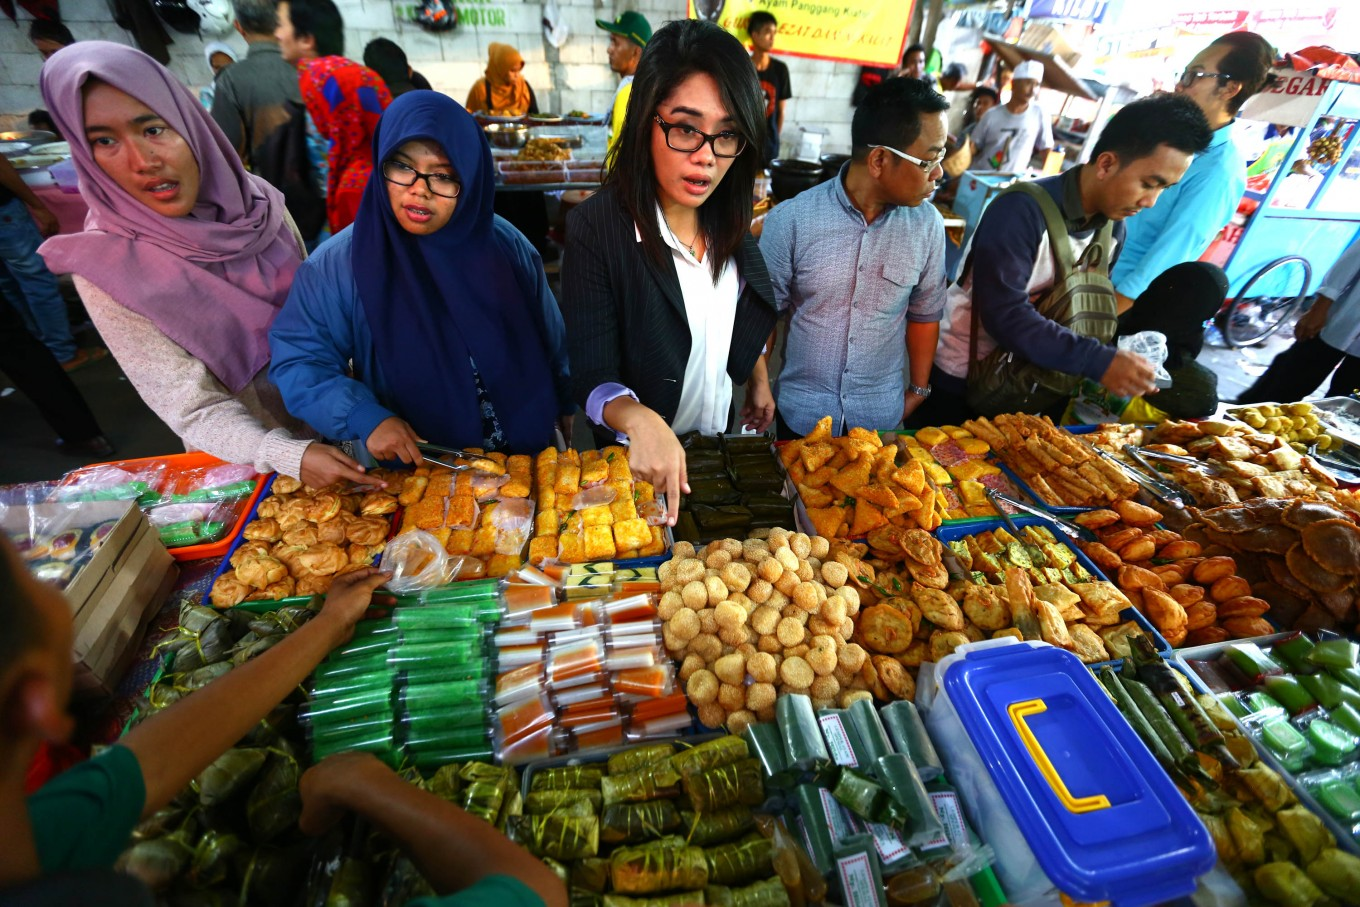 Jakarta to buy 1,000 tons of eggs to ensure supplies for Ramadhan